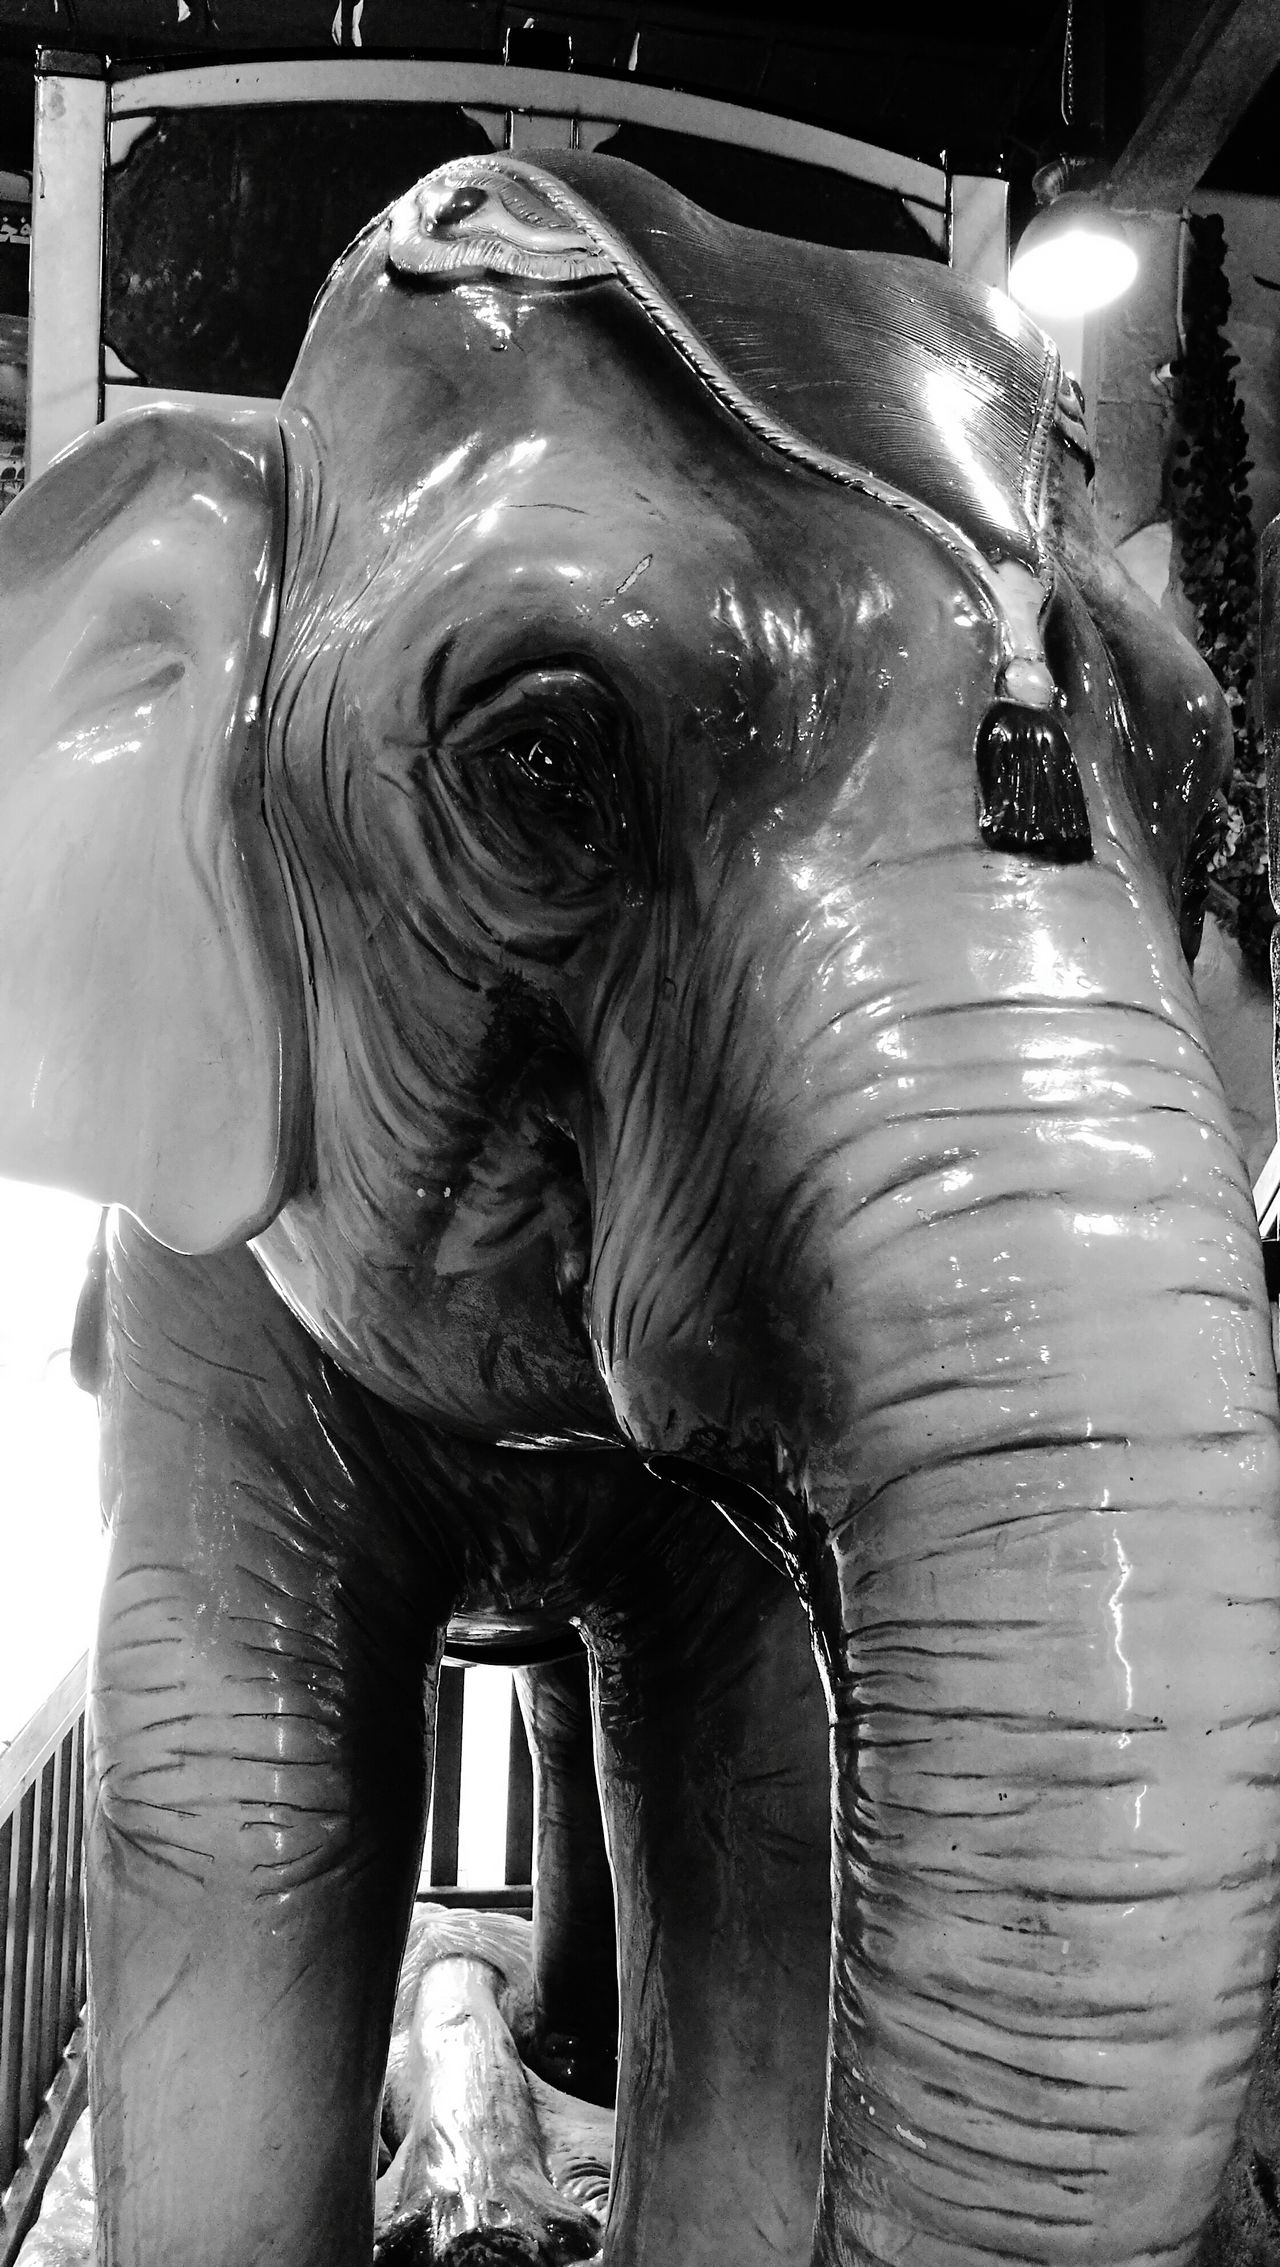 EyeEmNewHere Close-up Elephant Monochrome Photograhy Arts Culture And Entertainment Playgrounds Indoor Photoshoot Amusememt Park Games For Children Animal Themes Carnival Elephant Ride Close-up Shot Indoors  Close Up Technology Winter_collection Photography Themes